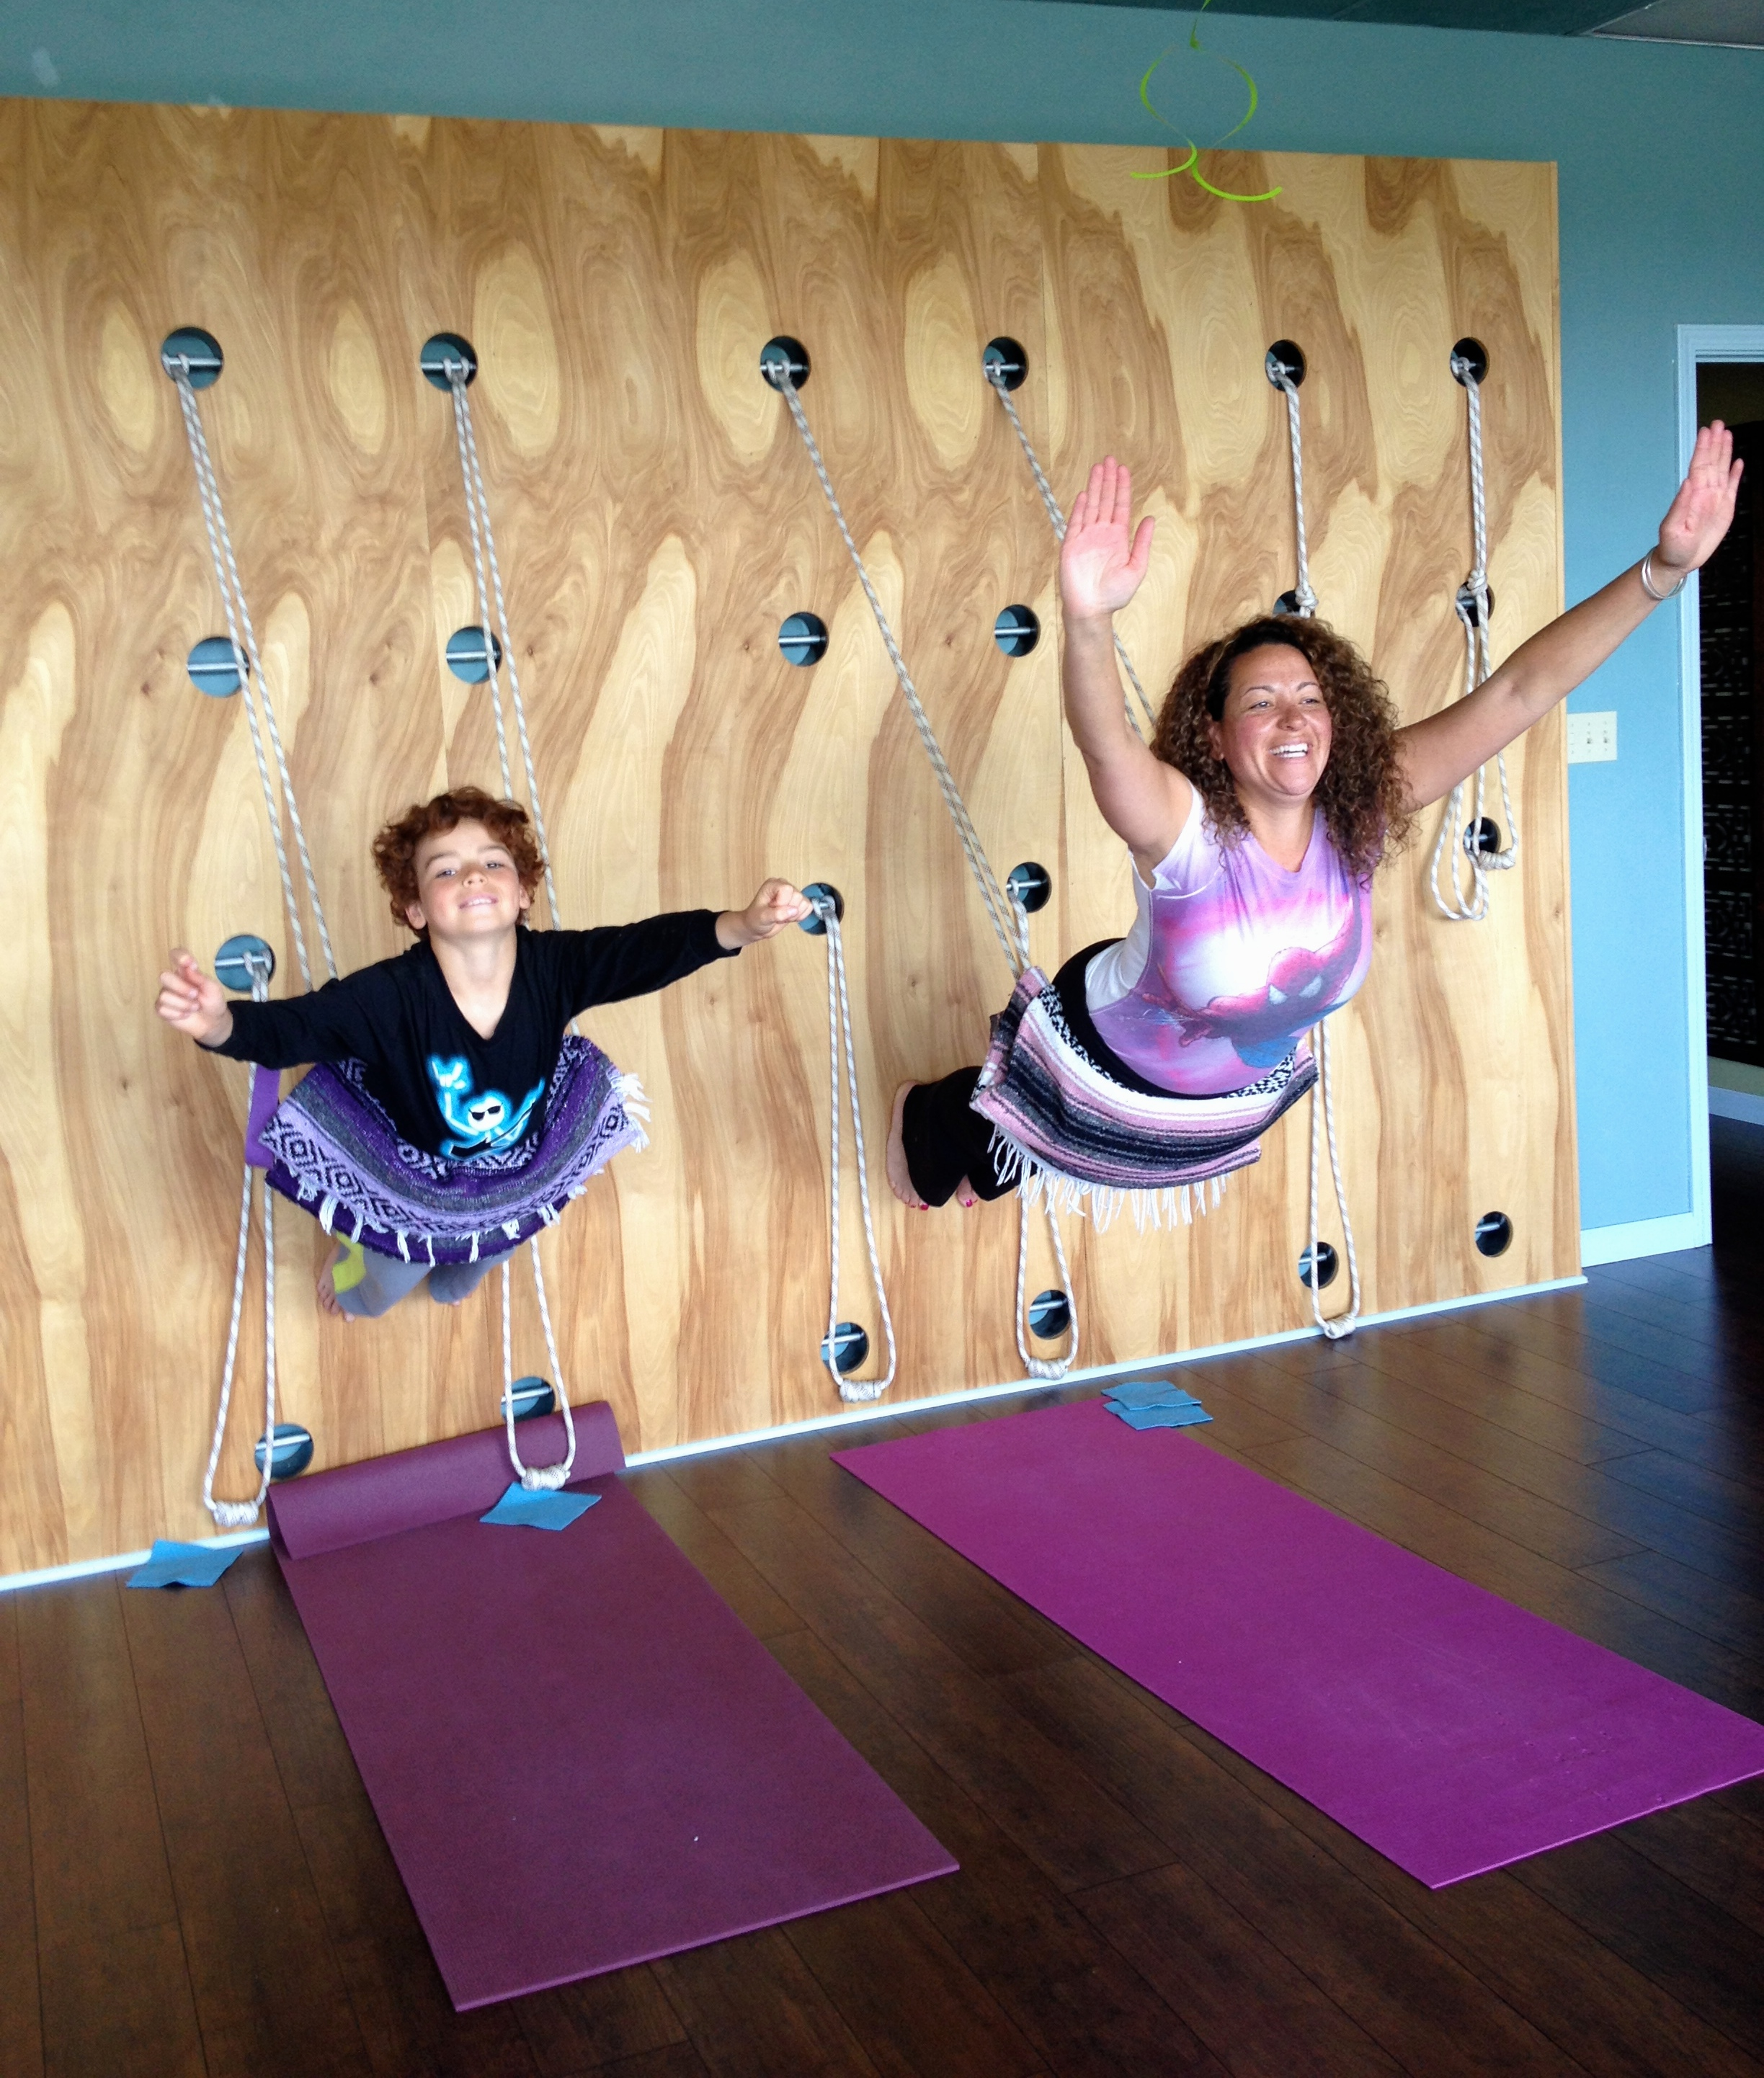 3 Person Yoga Challenge Easy For Kids Abc News